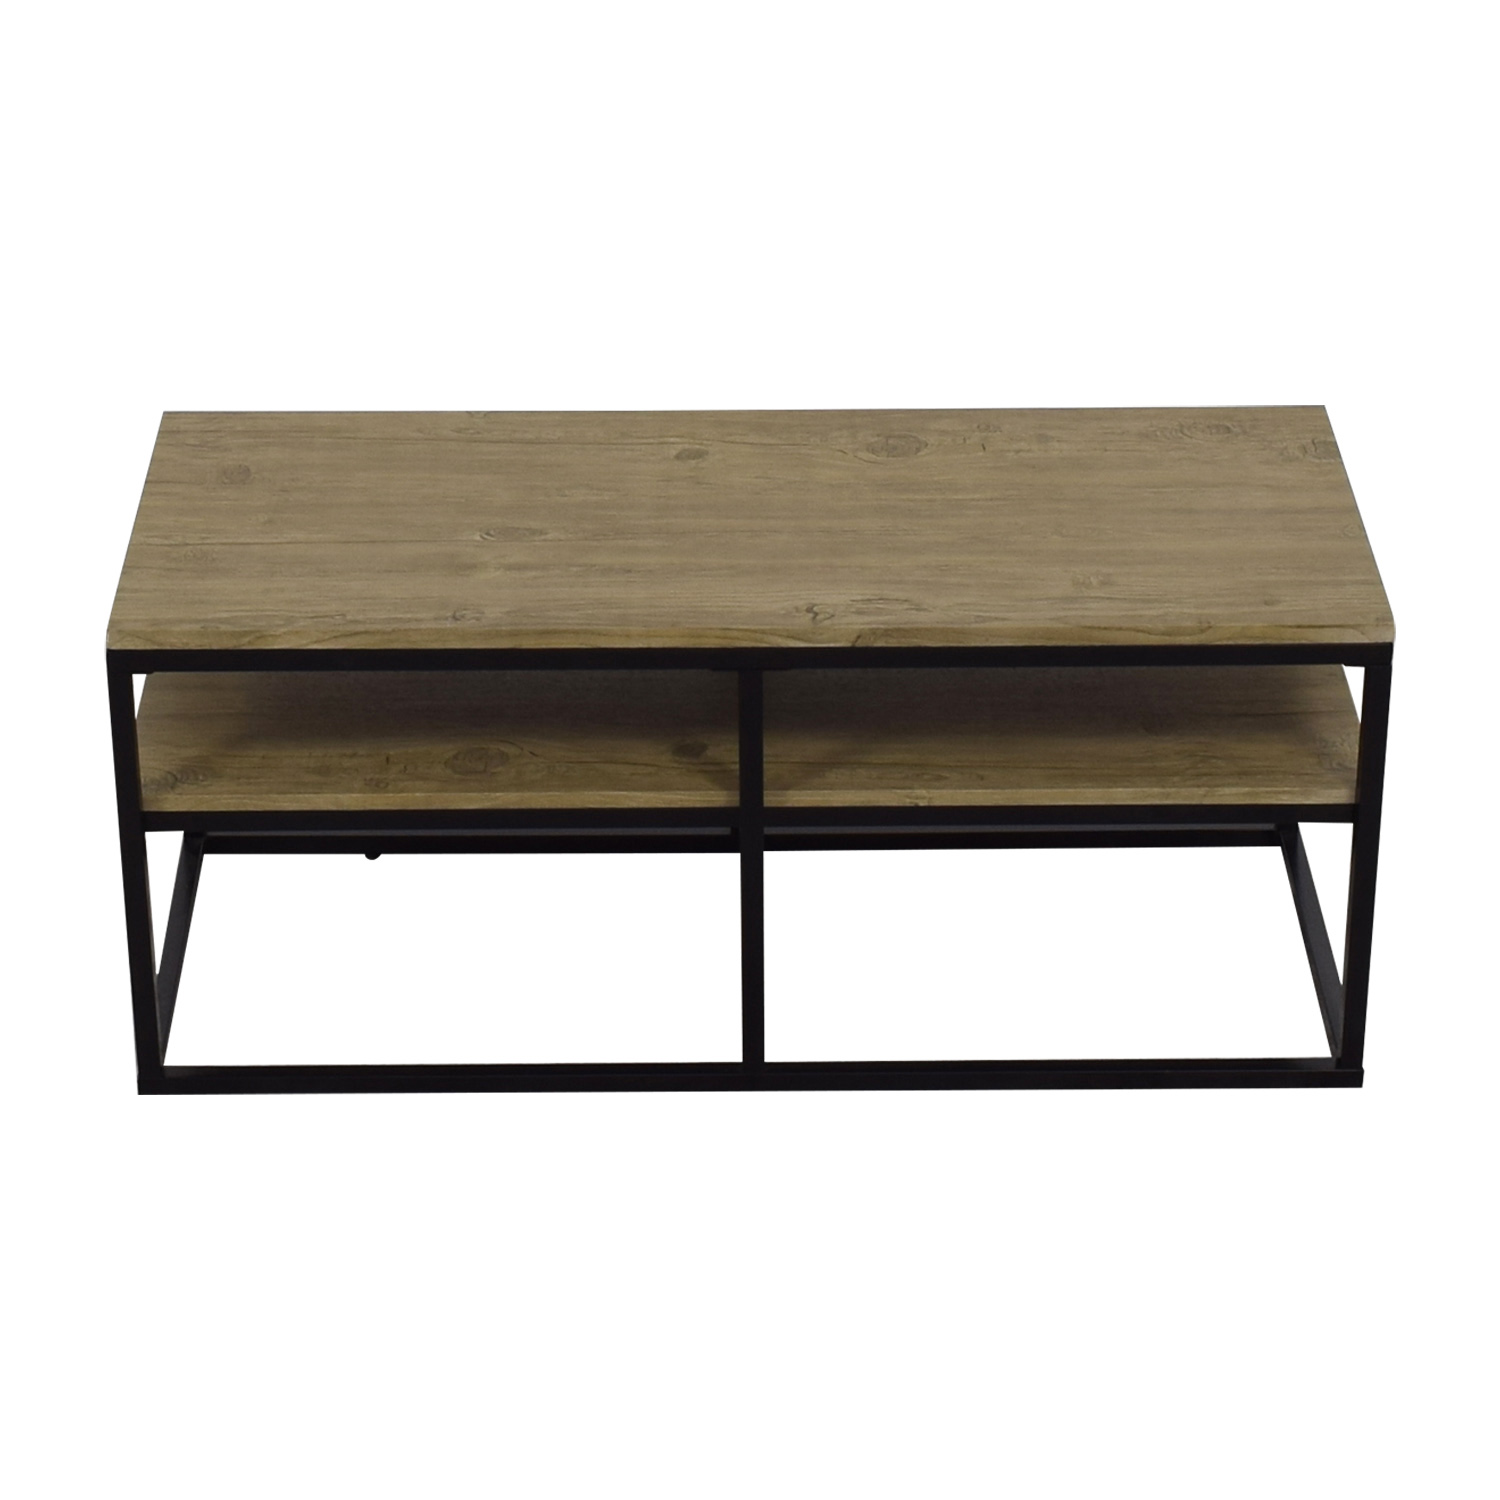 Modern Wood and Metal Coffee Table second hand